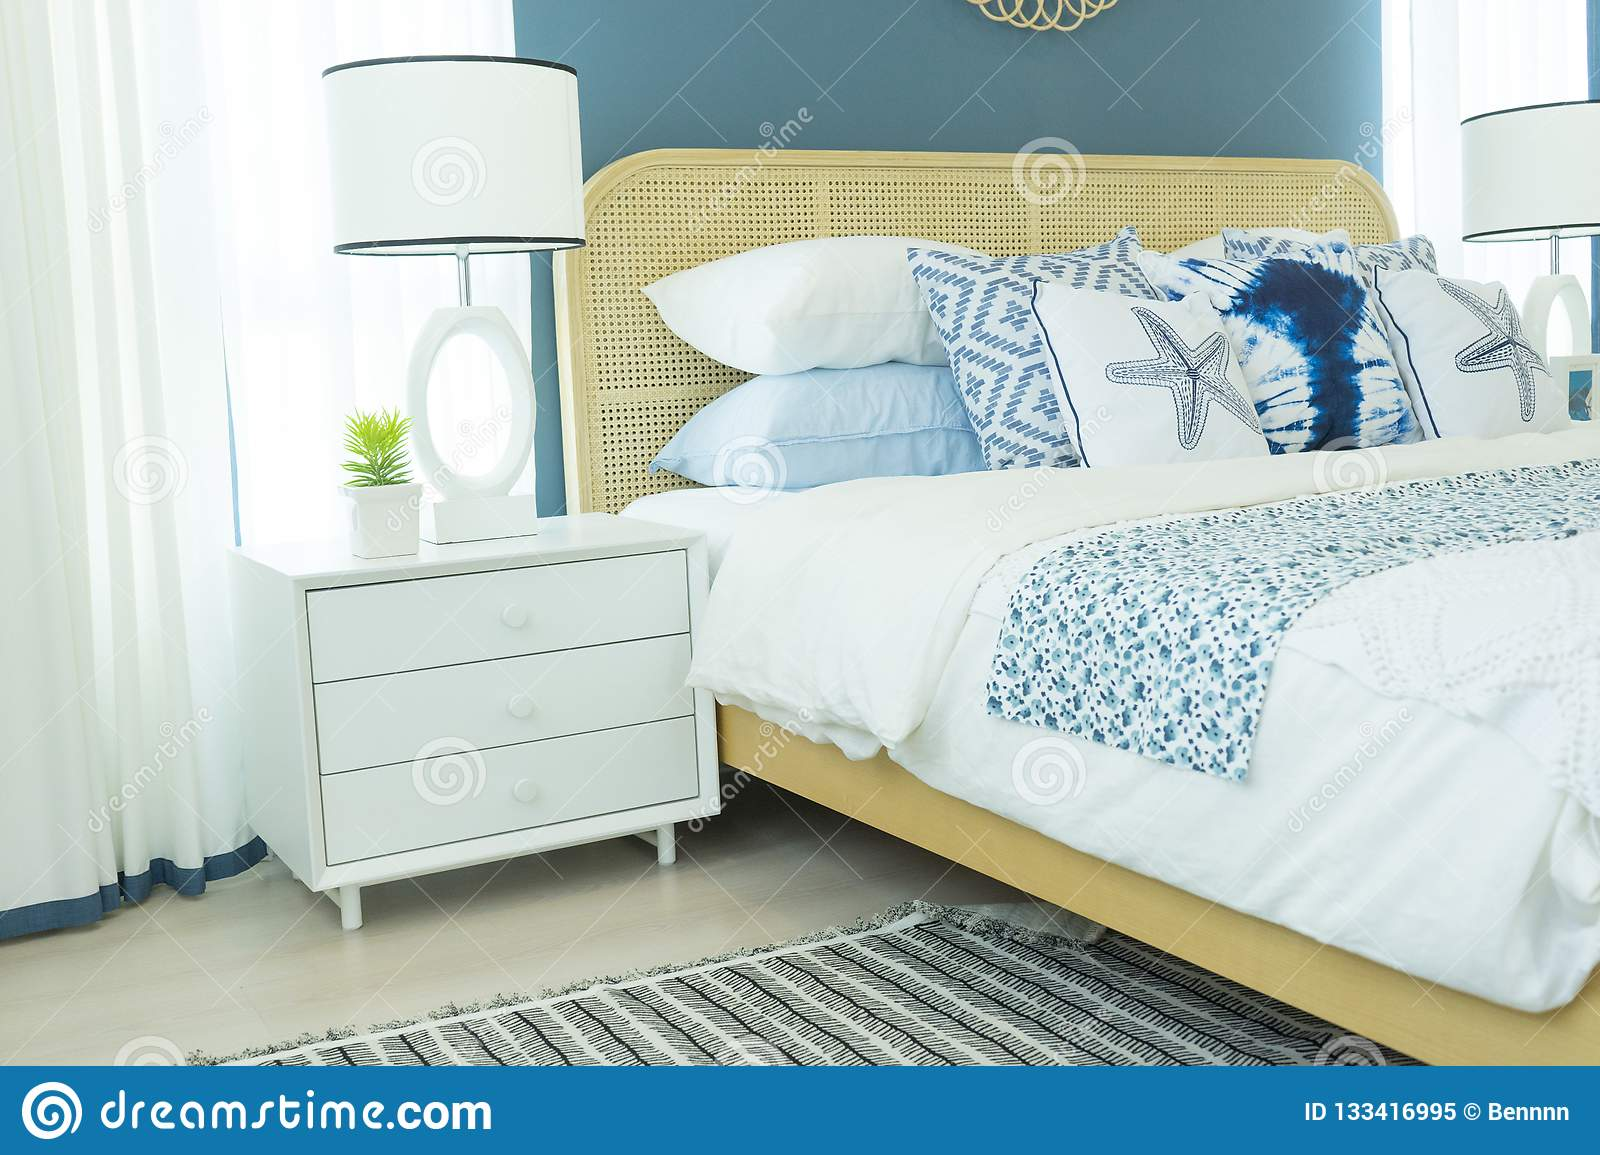 Master Bedroom With Blue Wall And White Table Lamp Stock Image Image Of Interior Home 133416995